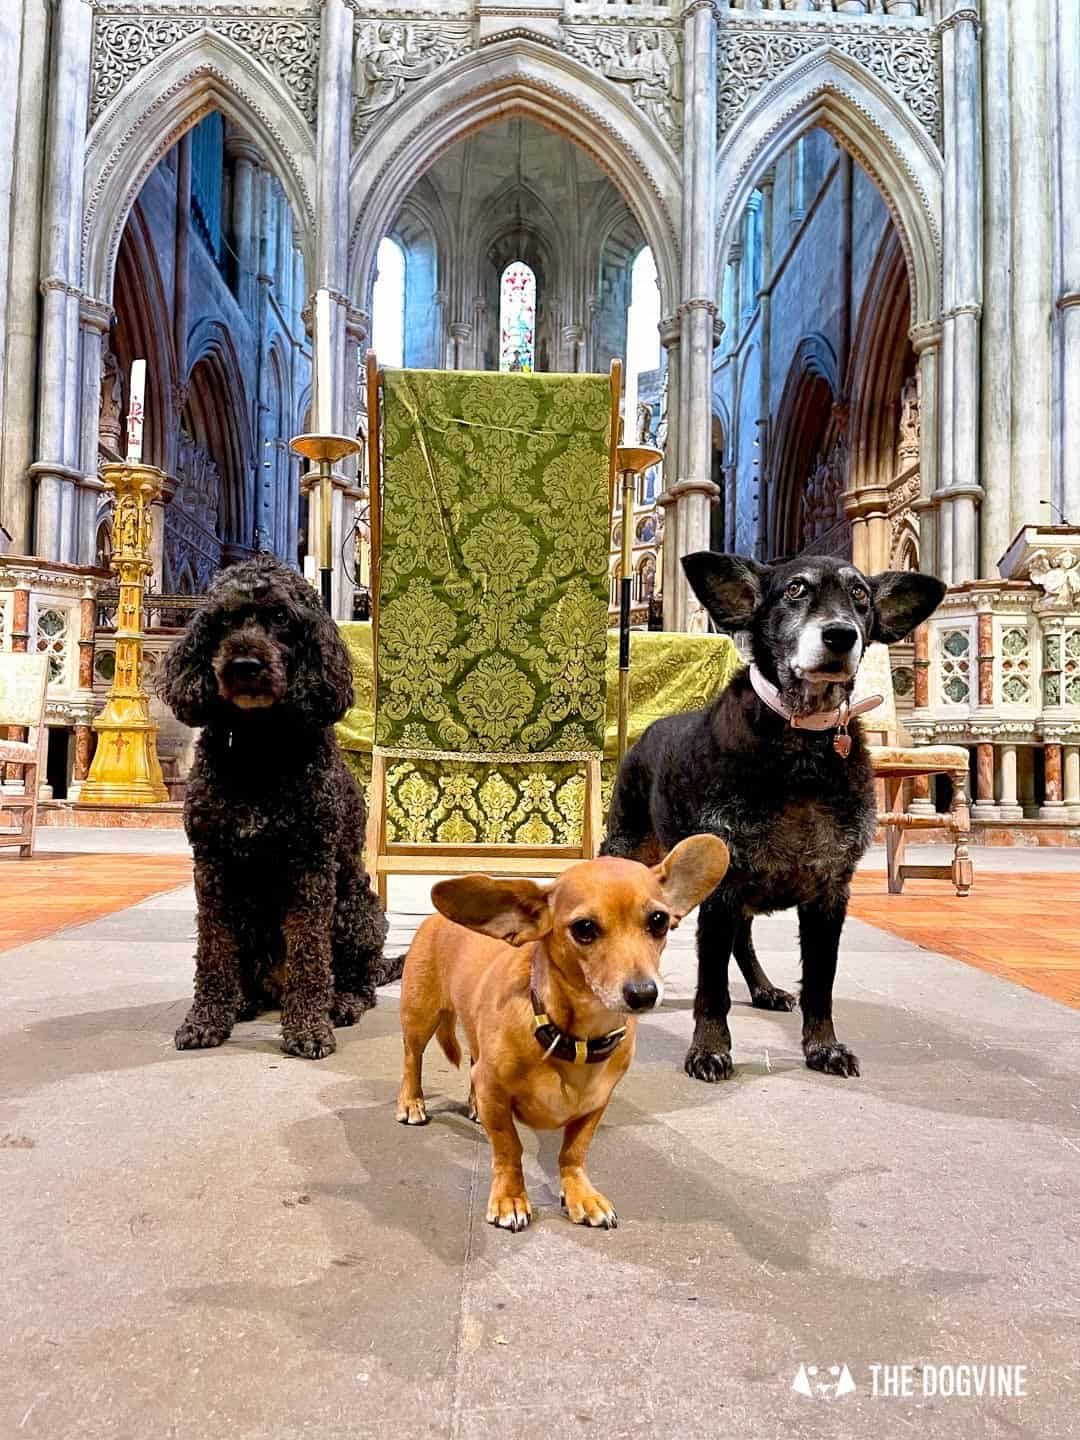 Dogs are welcome at St John the Baptist Church in London